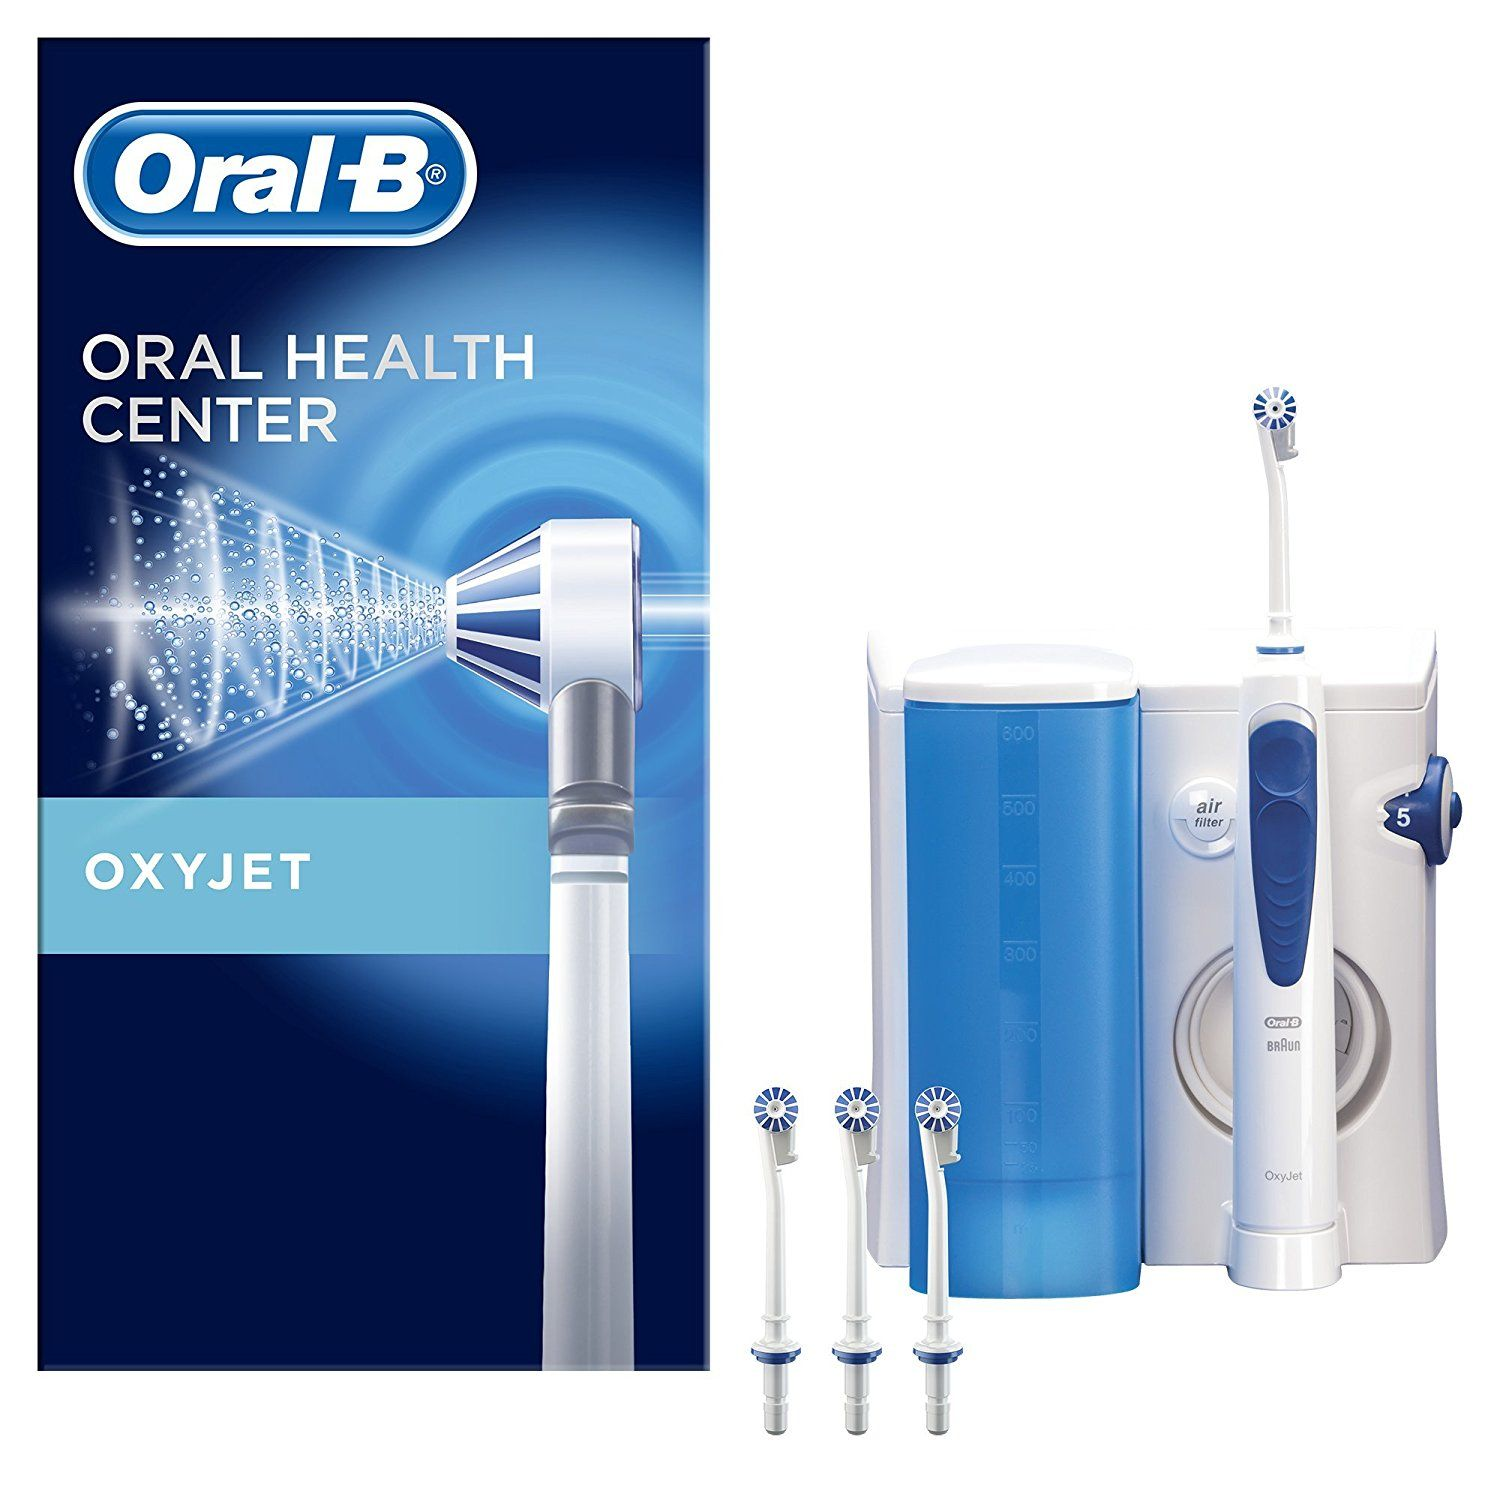 irrigador dental oral b -superchollo amazon